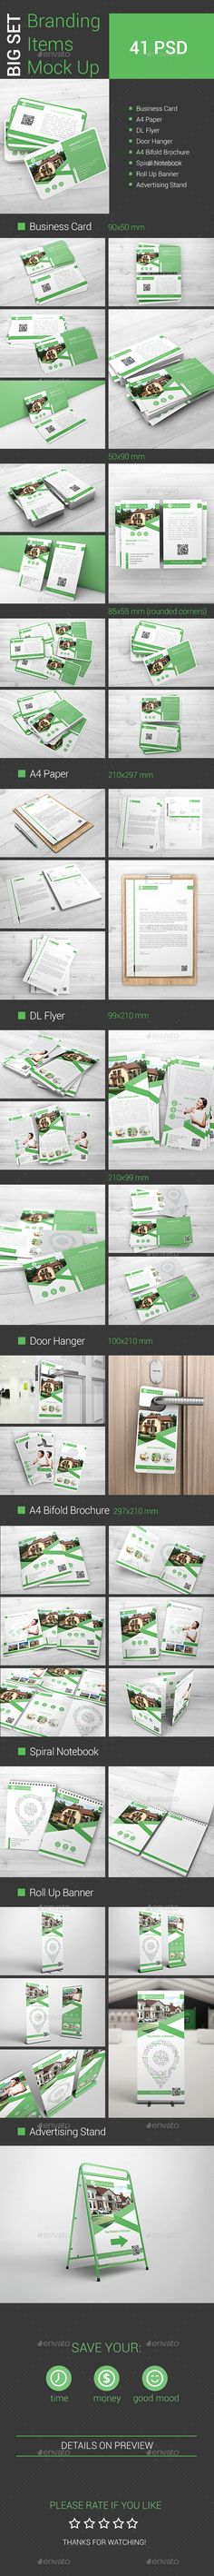 car #mockup #free psd mockup Pinterest Mock up, User - notebook paper download